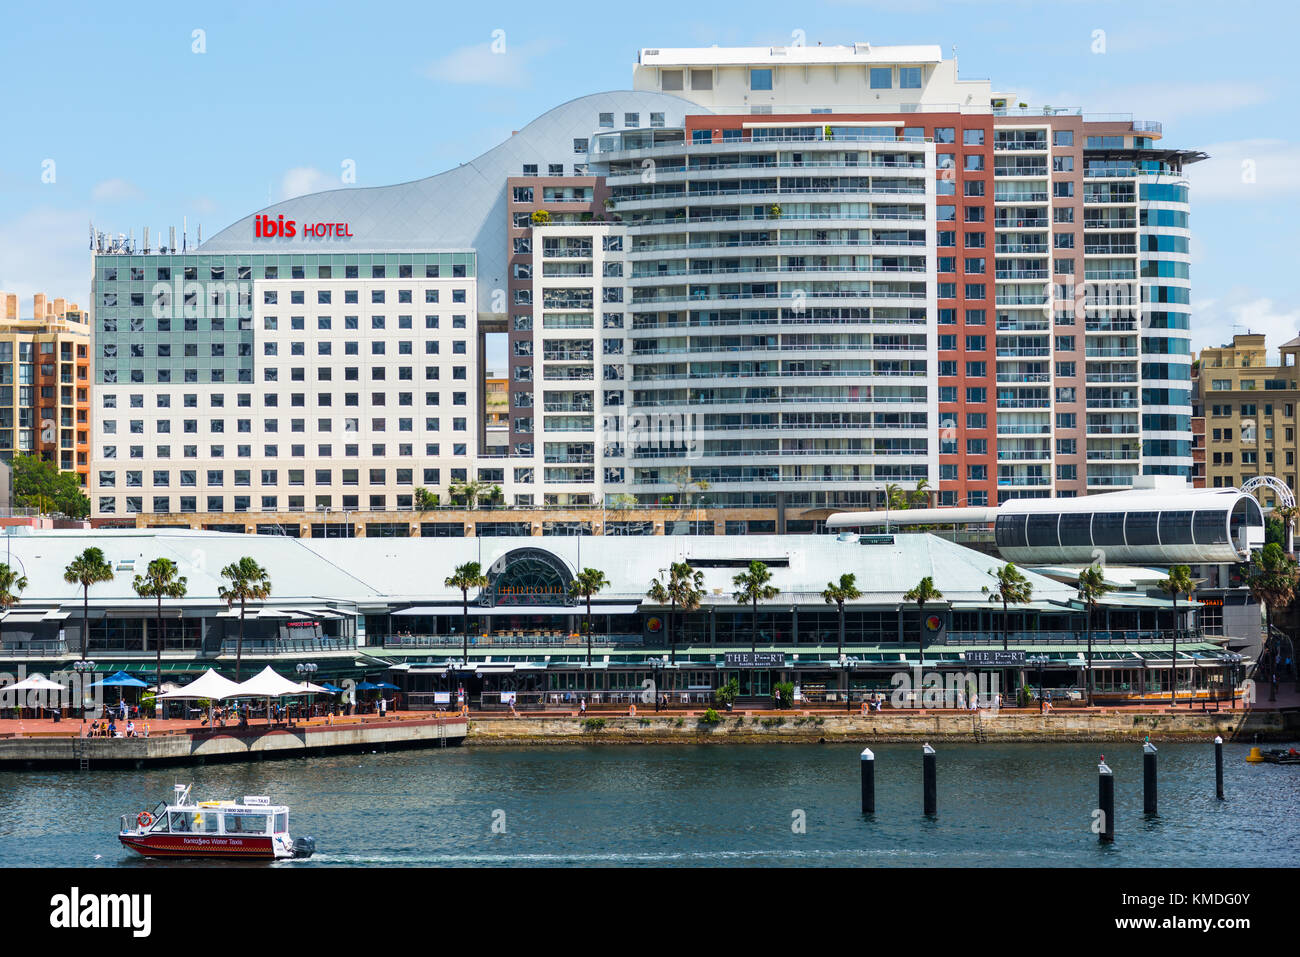 The Ibis Hotel stands above the Harbourside shopping & restaurant complex on Darling Harbour, Sydney, New South - Stock Image